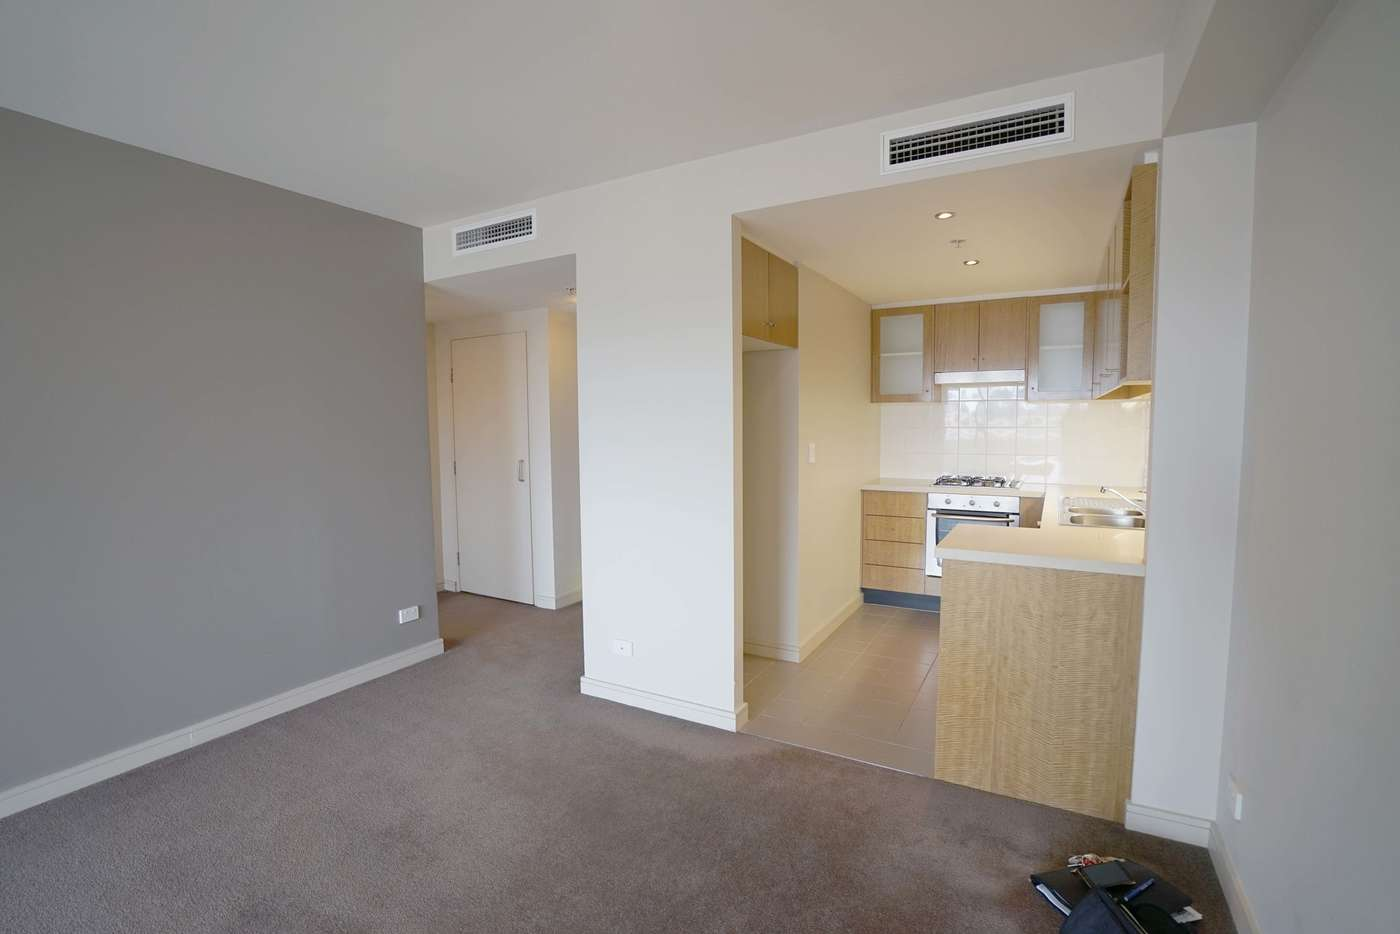 Fifth view of Homely apartment listing, 1201/79-81 Berry Street, North Sydney NSW 2060